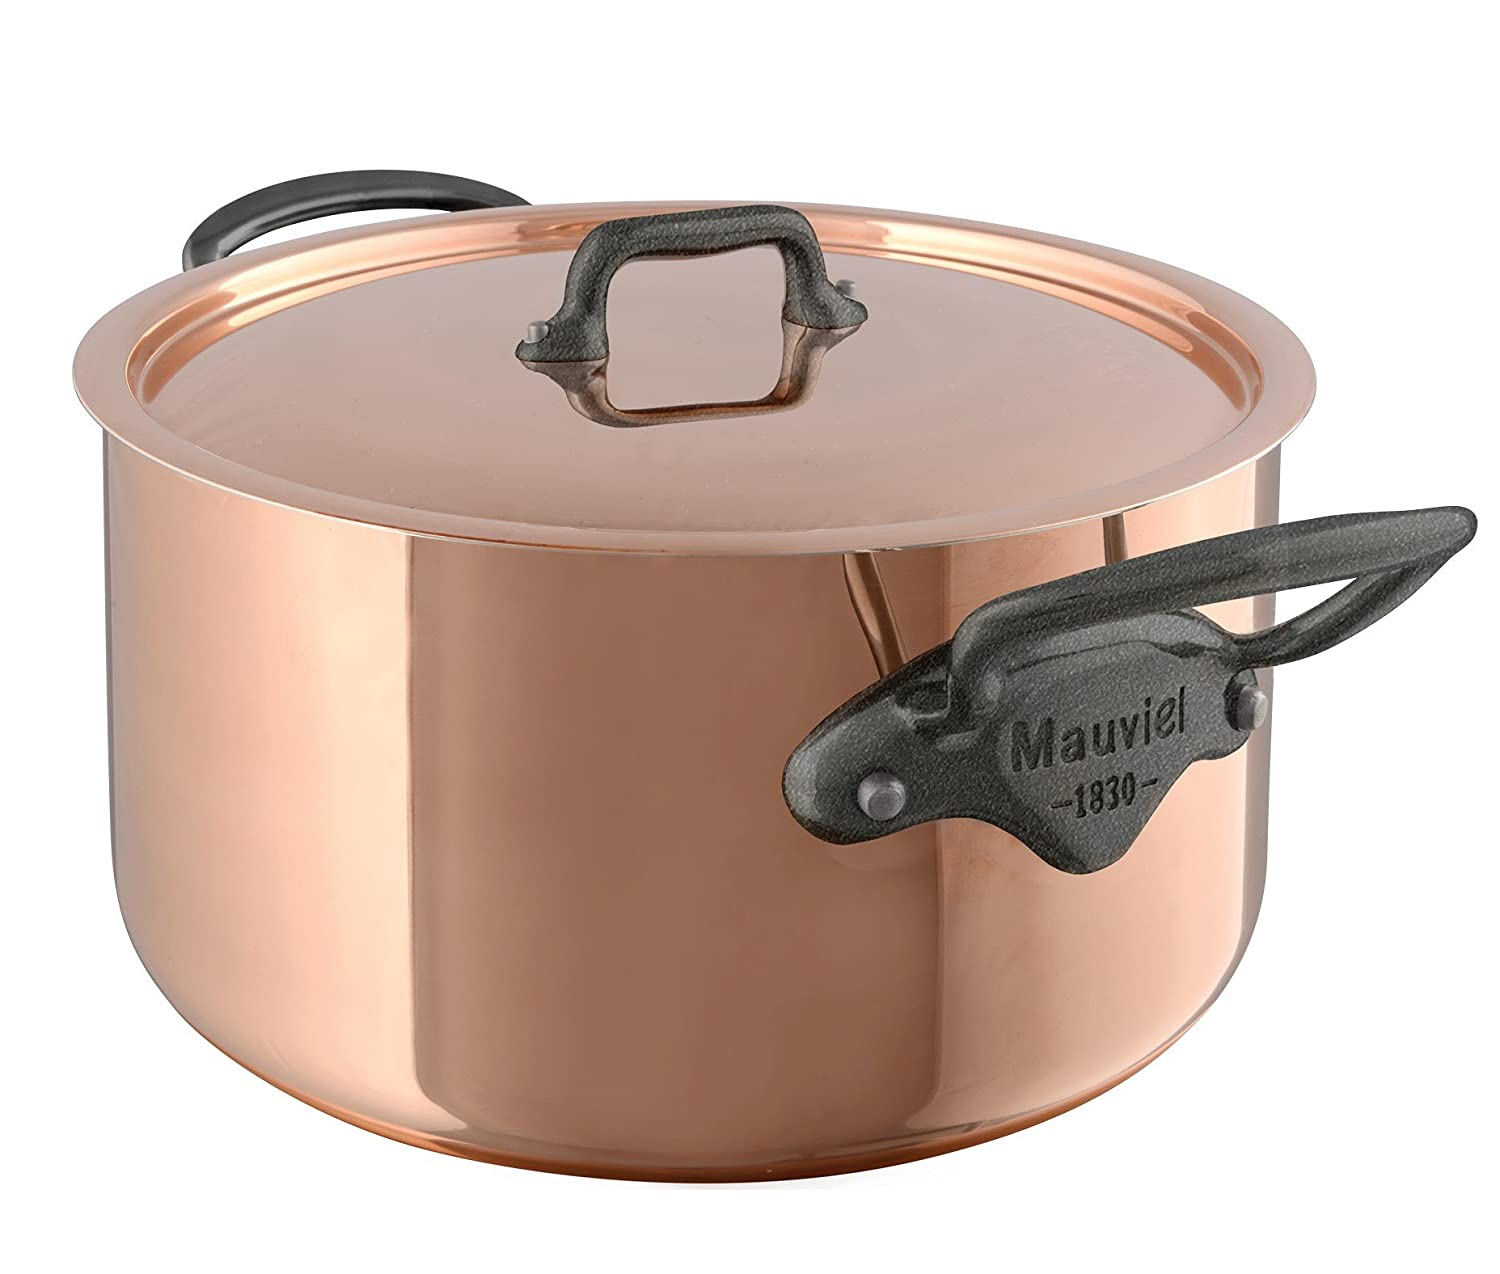 "Mauviel M'Heritage M150C 6481.25 Copper Dutch Oven/Stew pan with Lid. 5.6L/5.9 quart 24cm/9.5"" with Cast Stainless Steel Iron EletroplatedHandle"